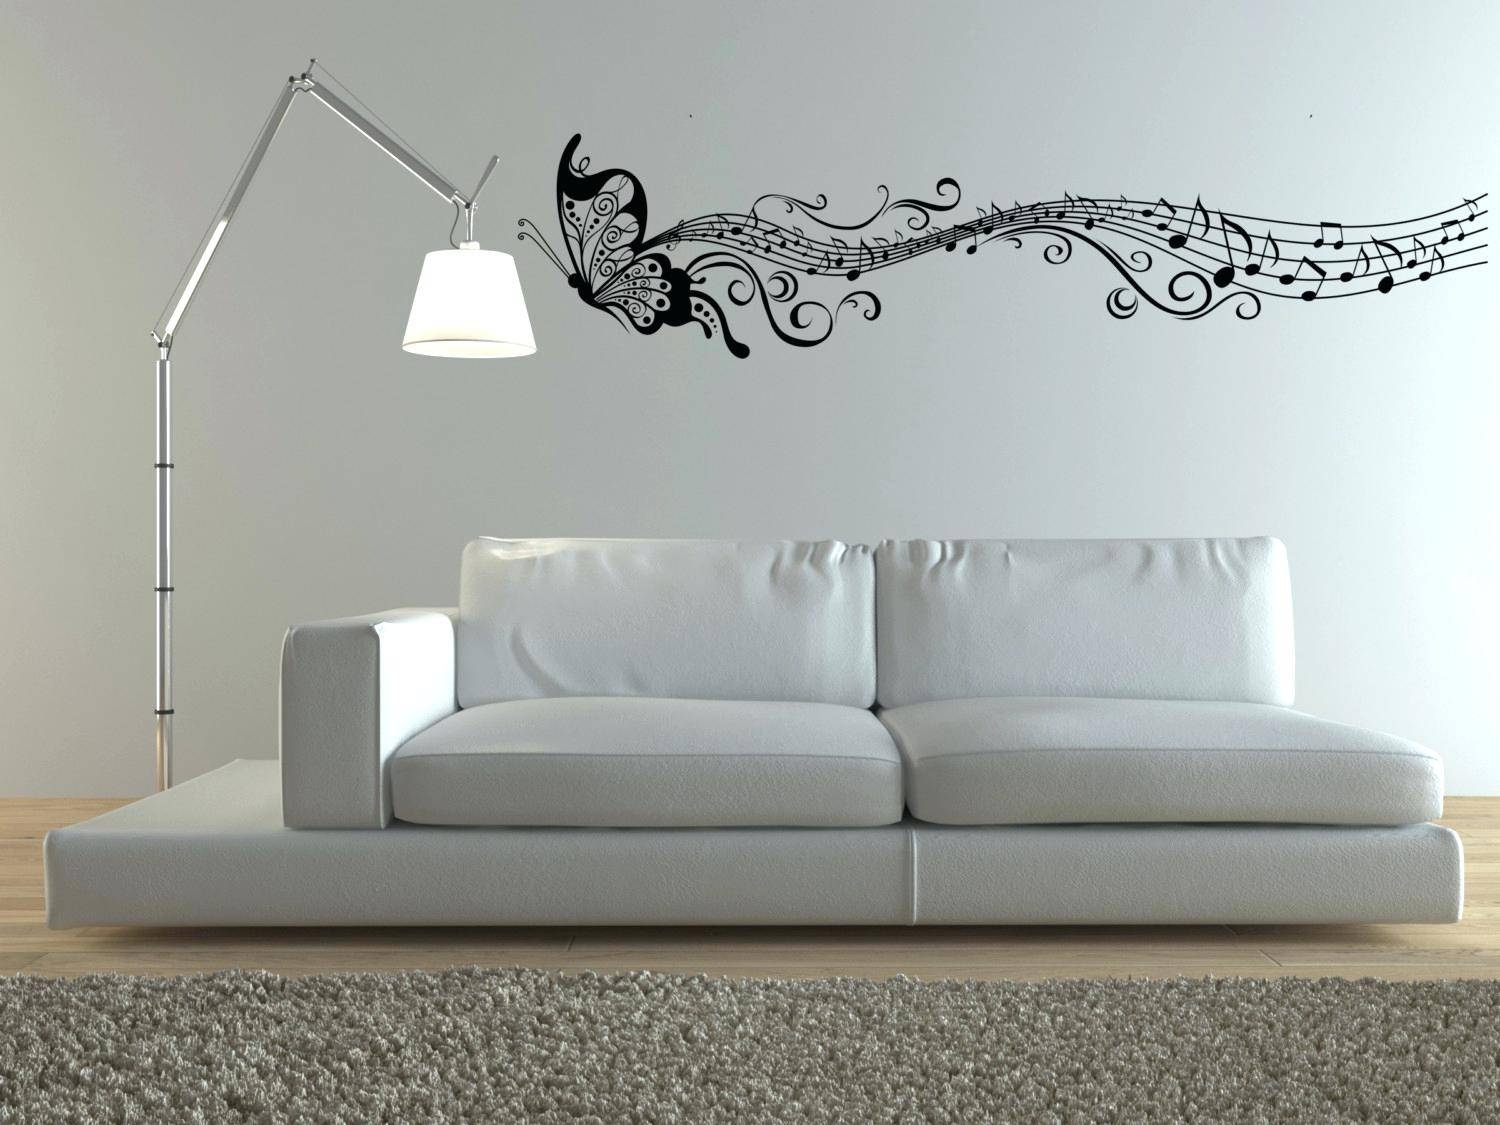 Wall Decor: Terrific Metal Music Notes Wall Decor For Inspirations Regarding Most Recently Released Metal Music Notes Wall Art (View 19 of 20)